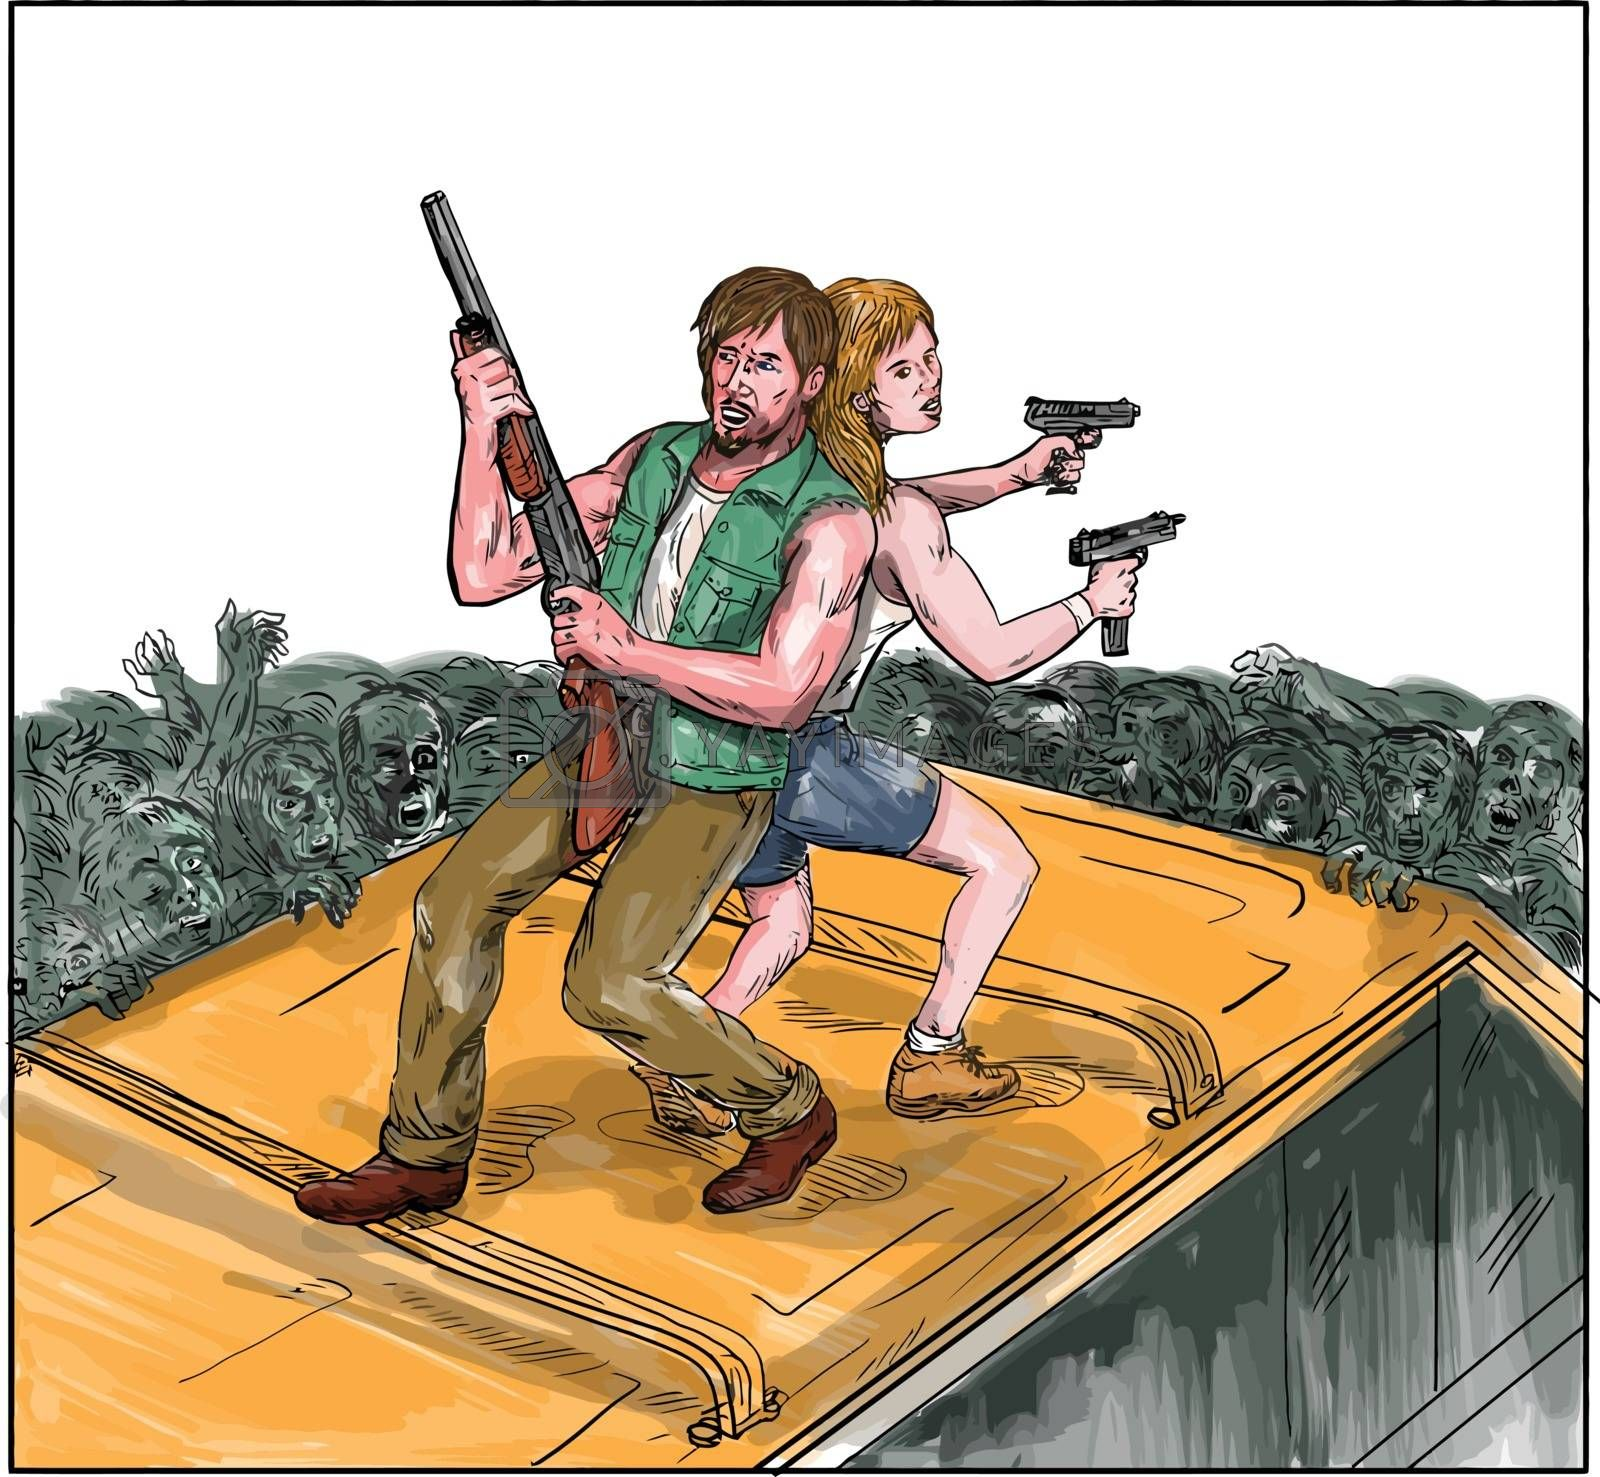 Watercolor style illustration of a man and woman on top of a van with back against each other holding gun rifle fighting zombies.